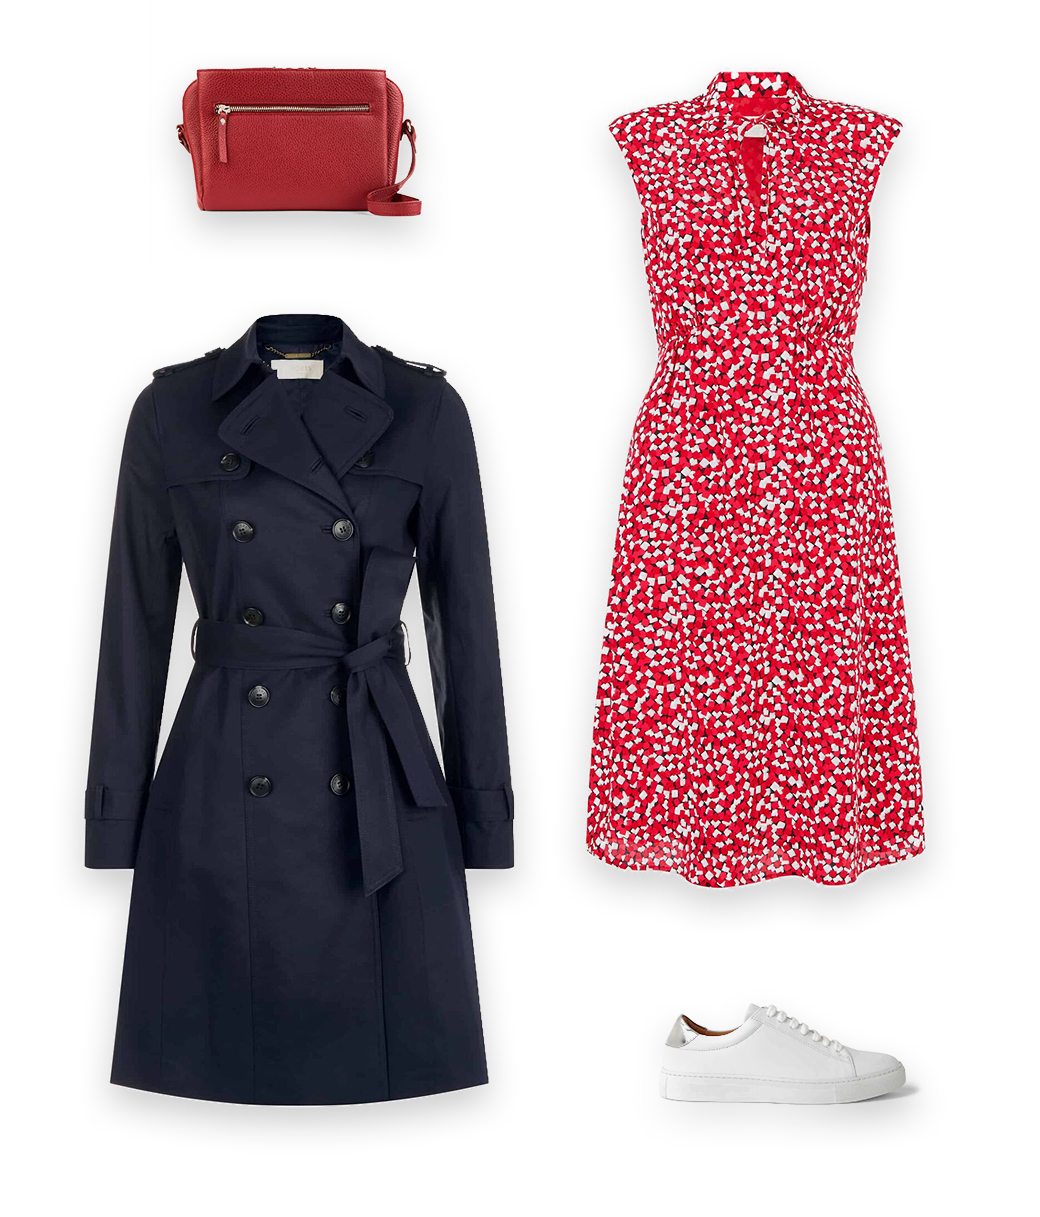 A timeless trench coat outfit, styles a classic Hobbs navy blue trench coat with a ared floral dress, white leather trainers and a red leather drocc body bag.